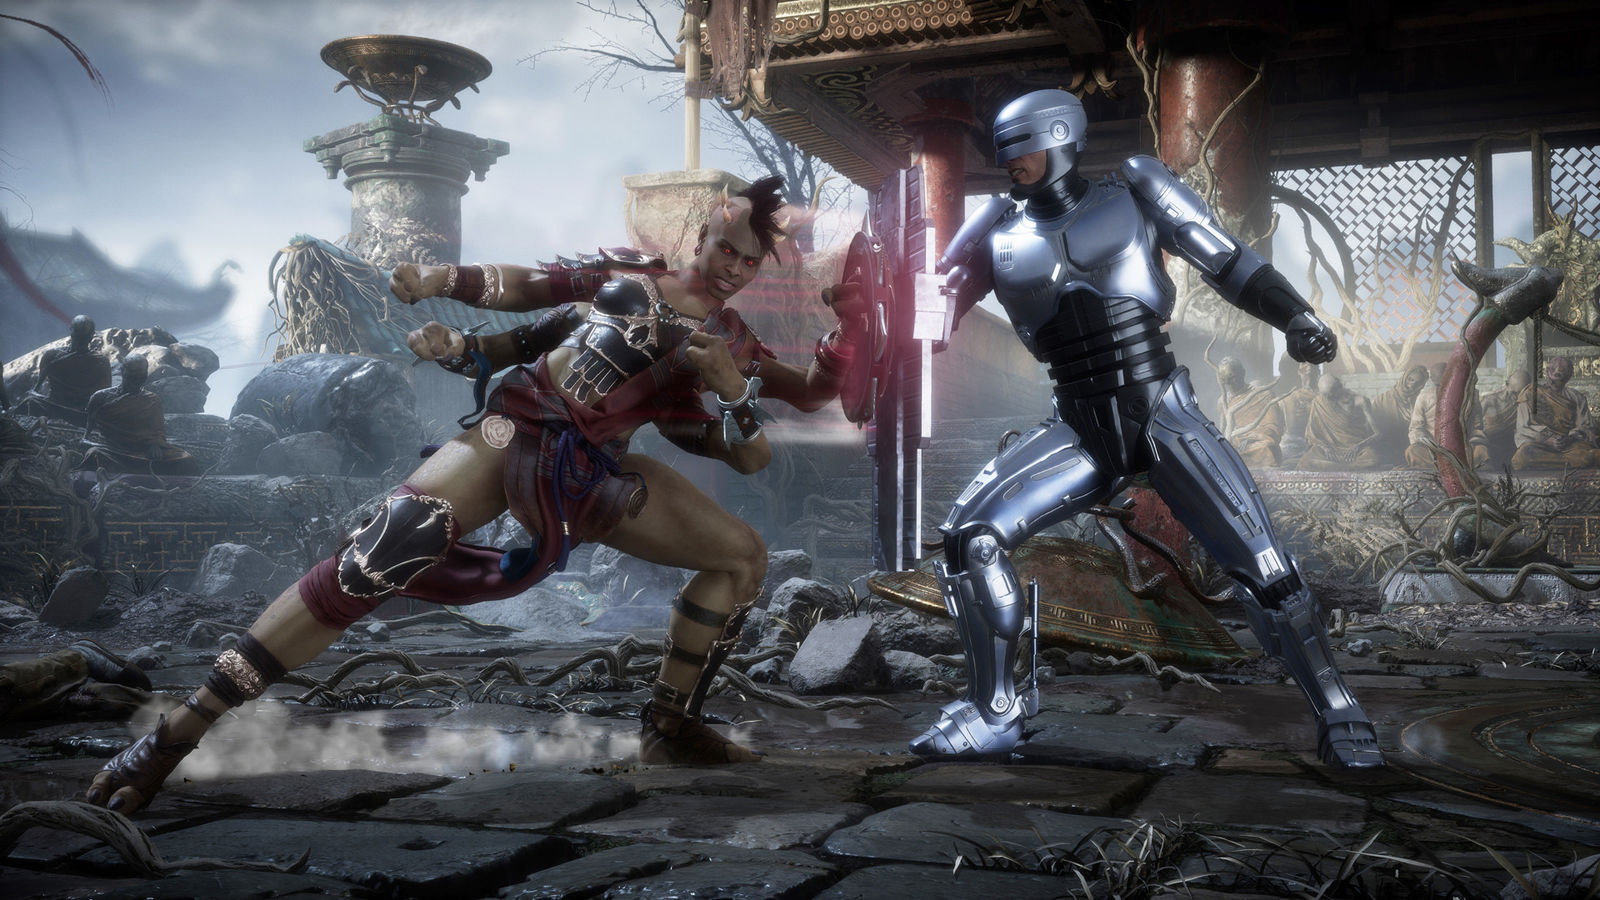 Mortal Kombat 11: Aftermath + Kombat Pack(Steam) RU/CIS